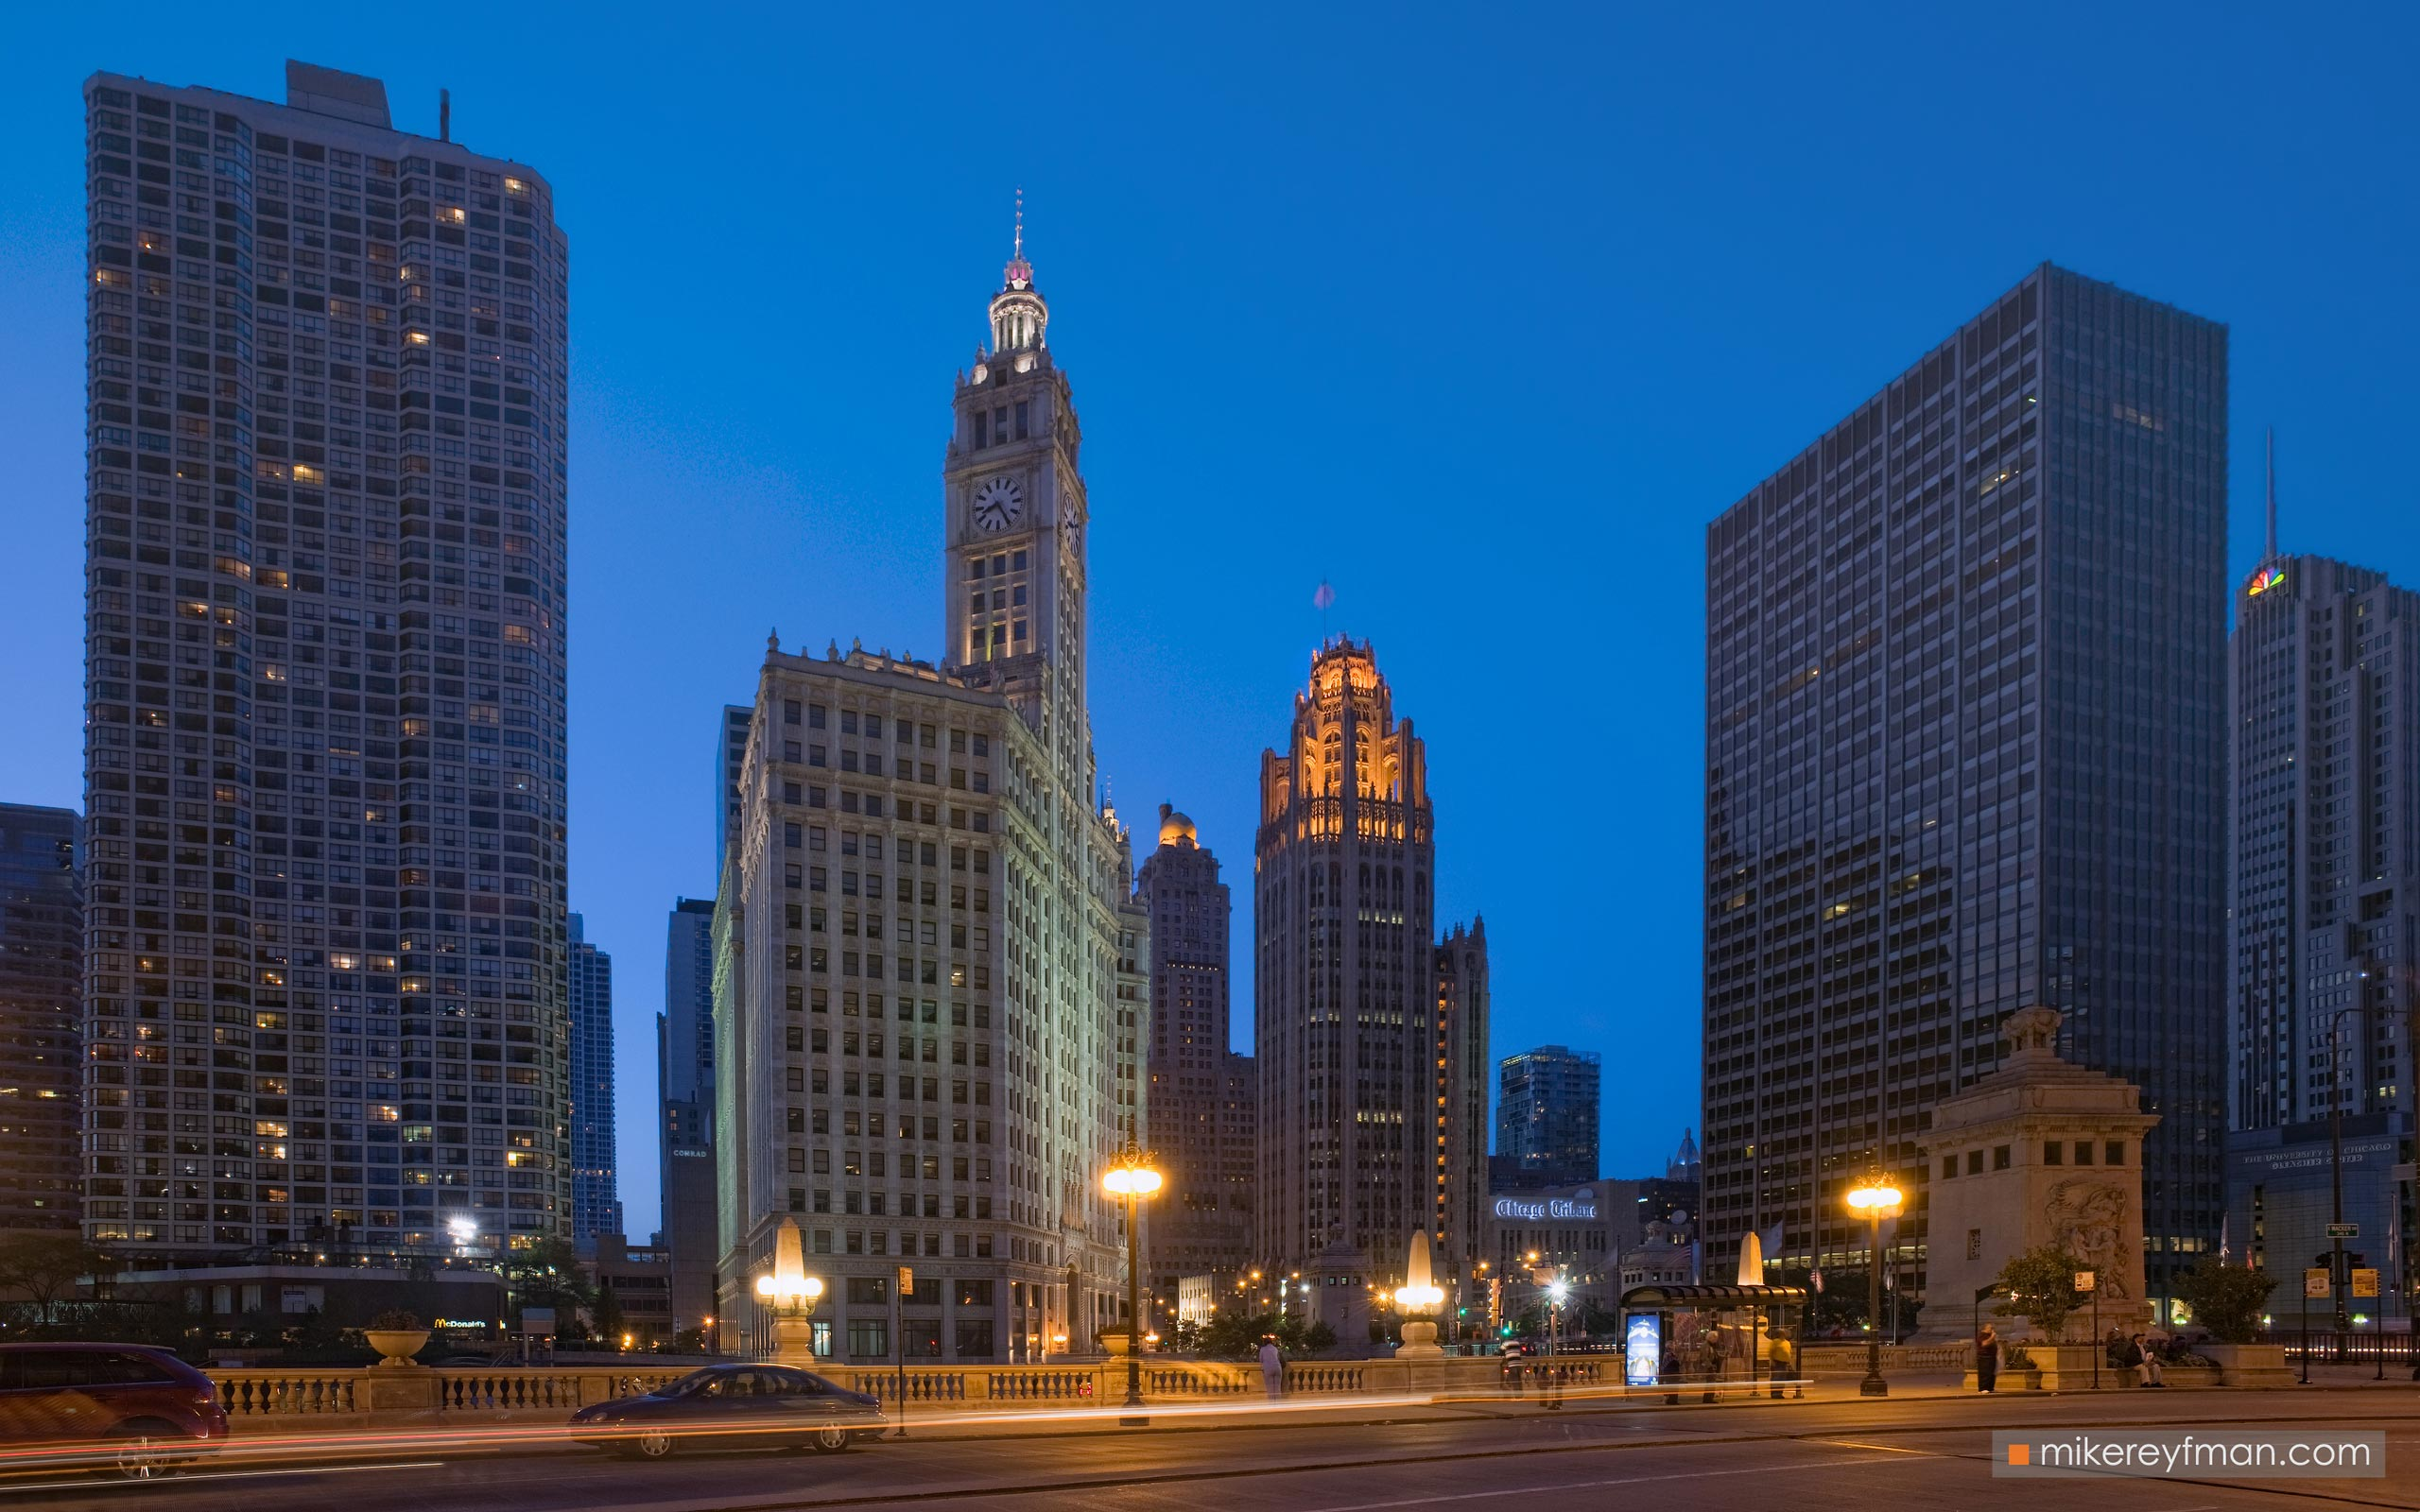 City at Night. Chicago, Illinois, USA. 073-CH1-M3X5738 - Chicago, USA: The